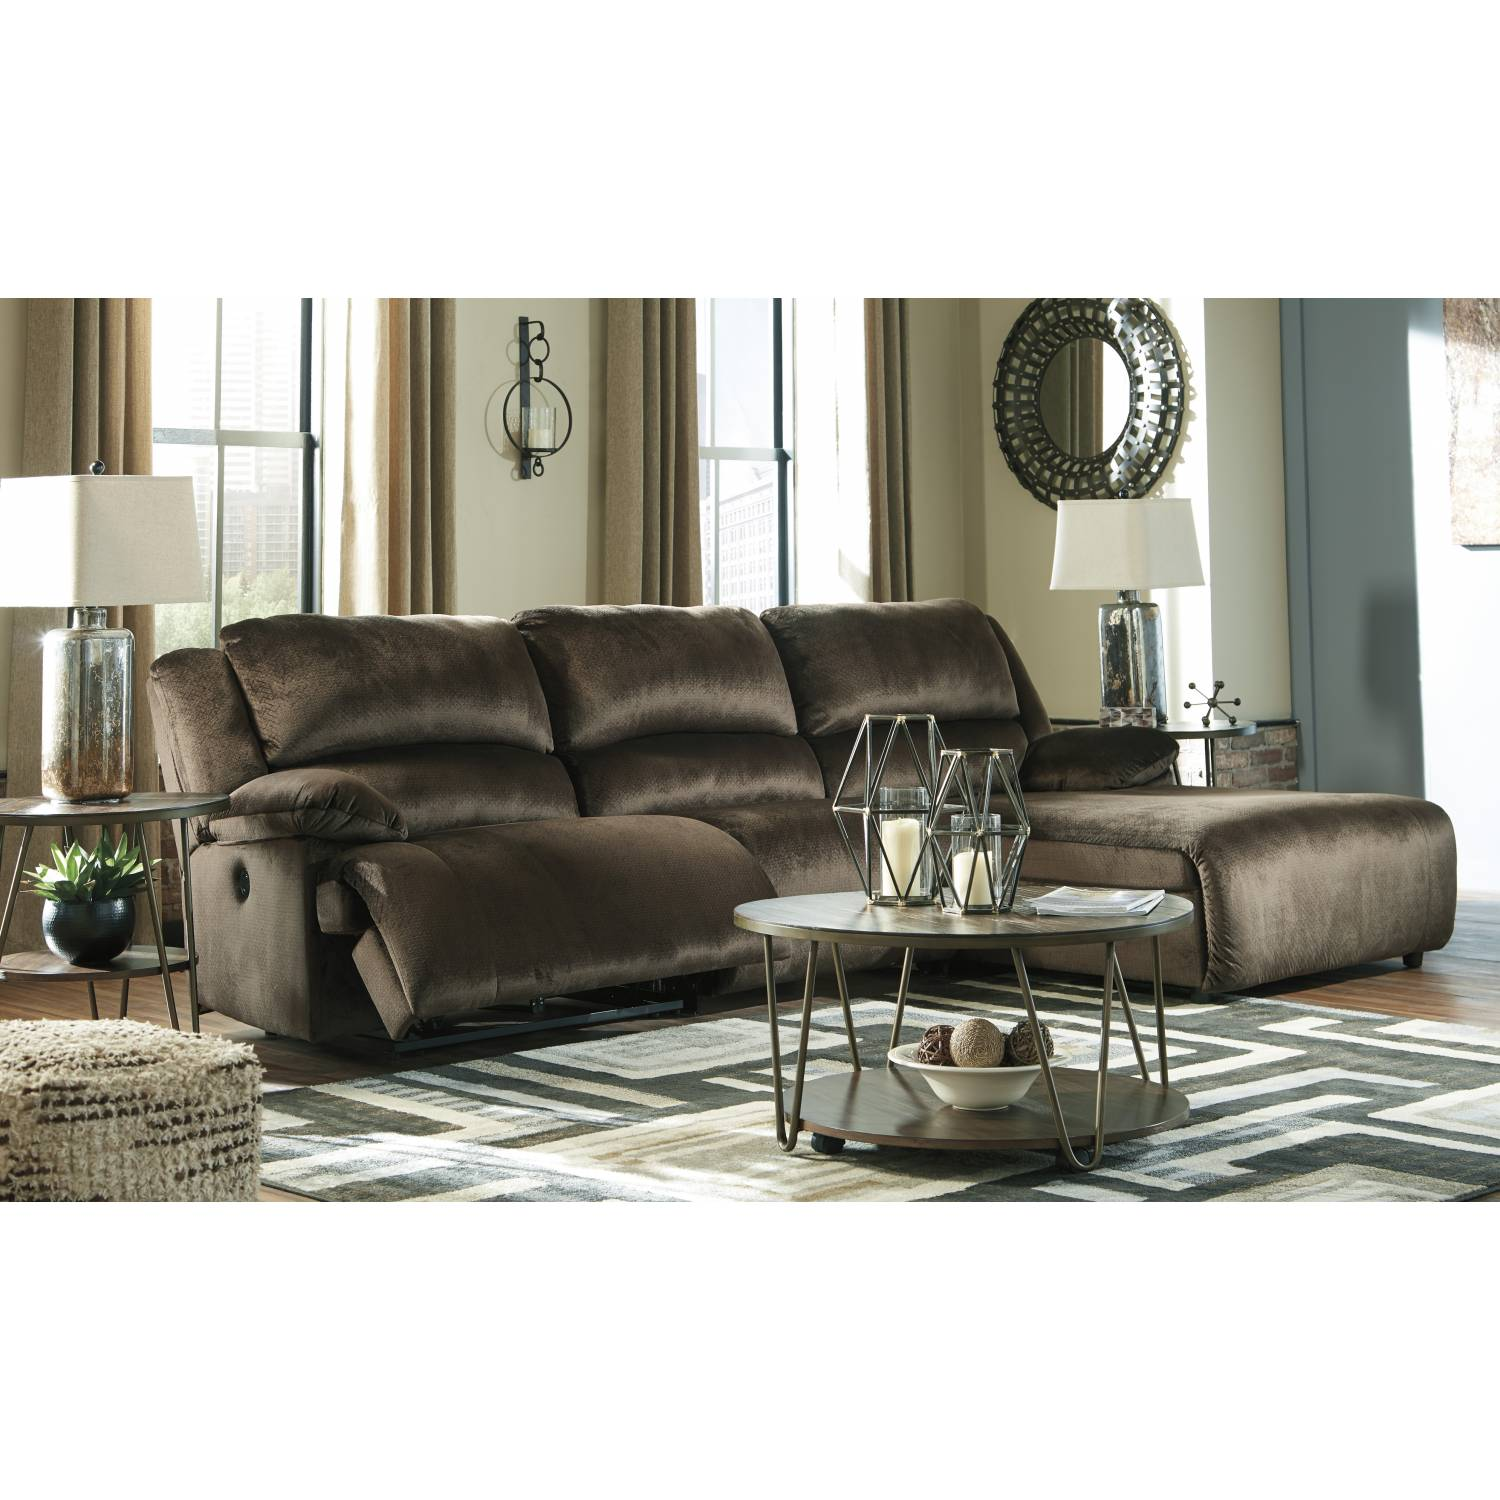 Ashley Furniture Orange County Ca: 36504 Clonmel Sectionals 2